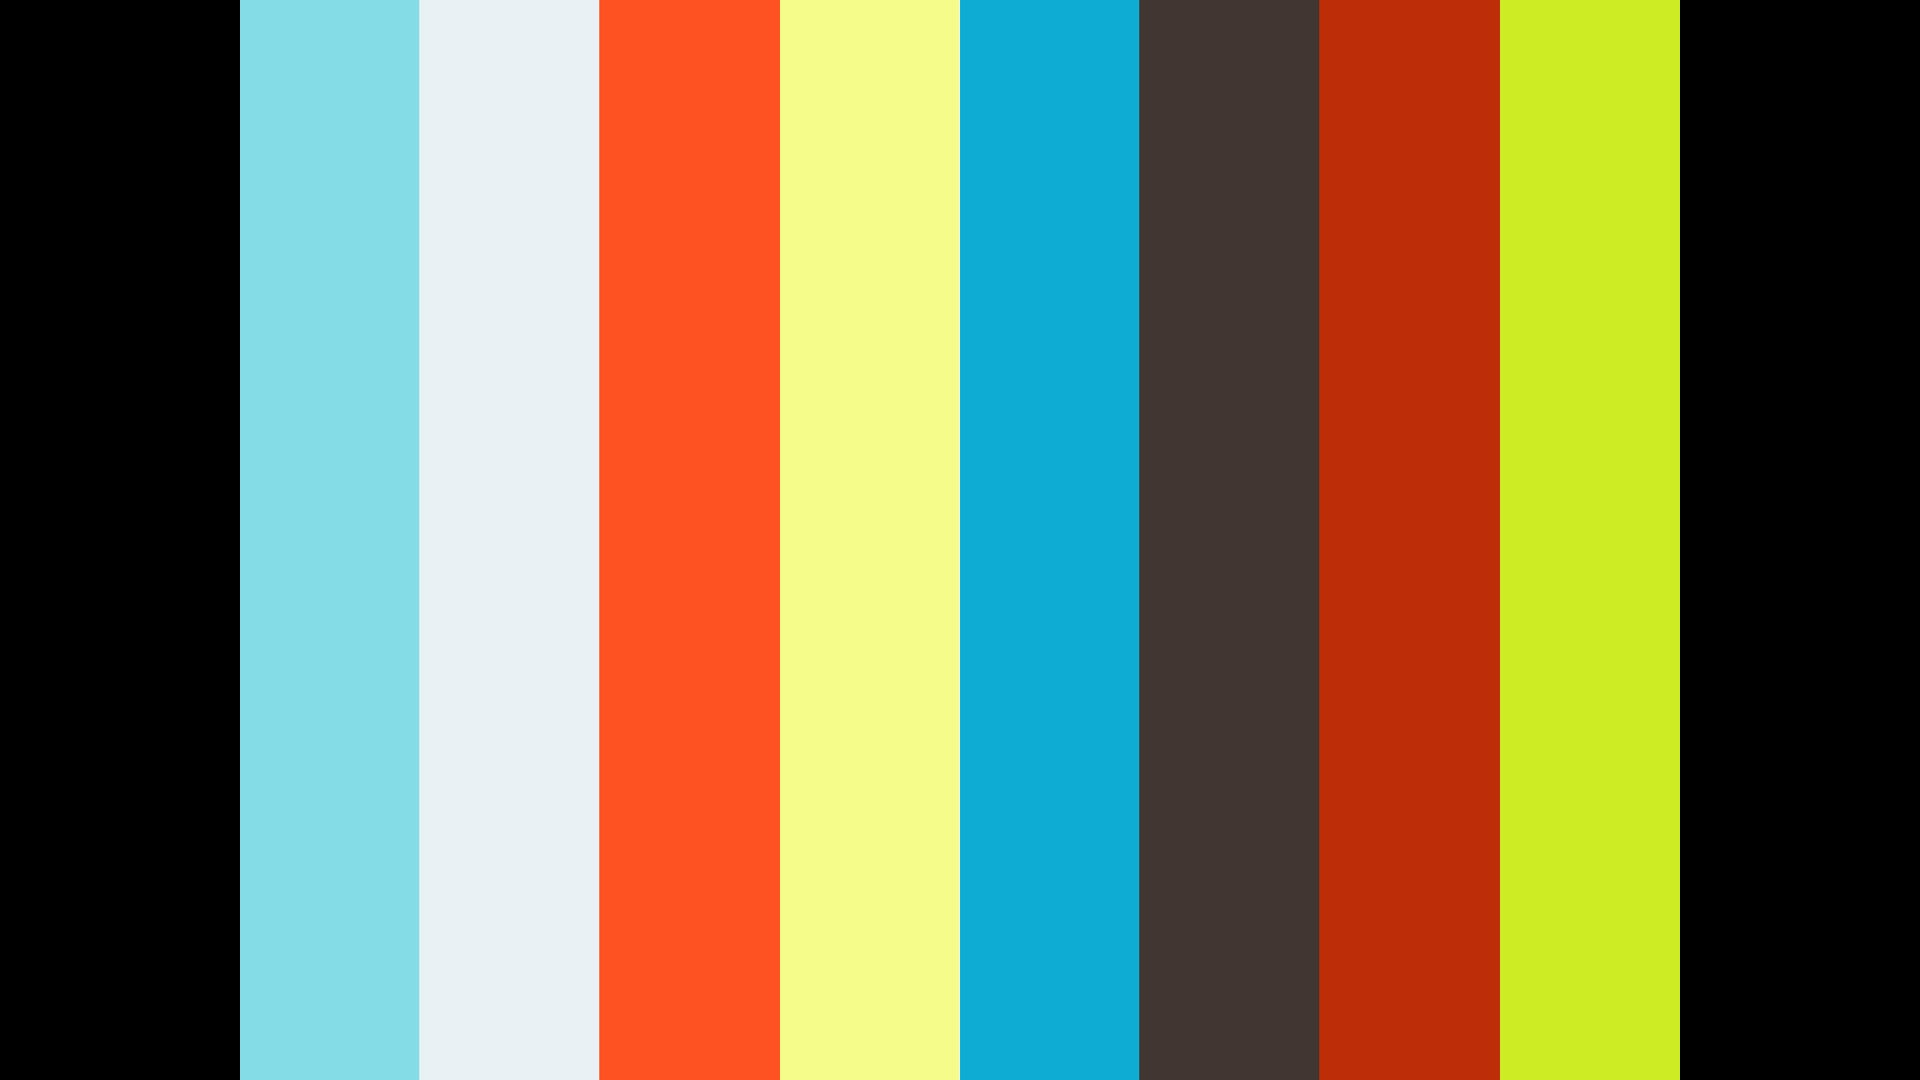 Balticlab - Connecting Creative Minds